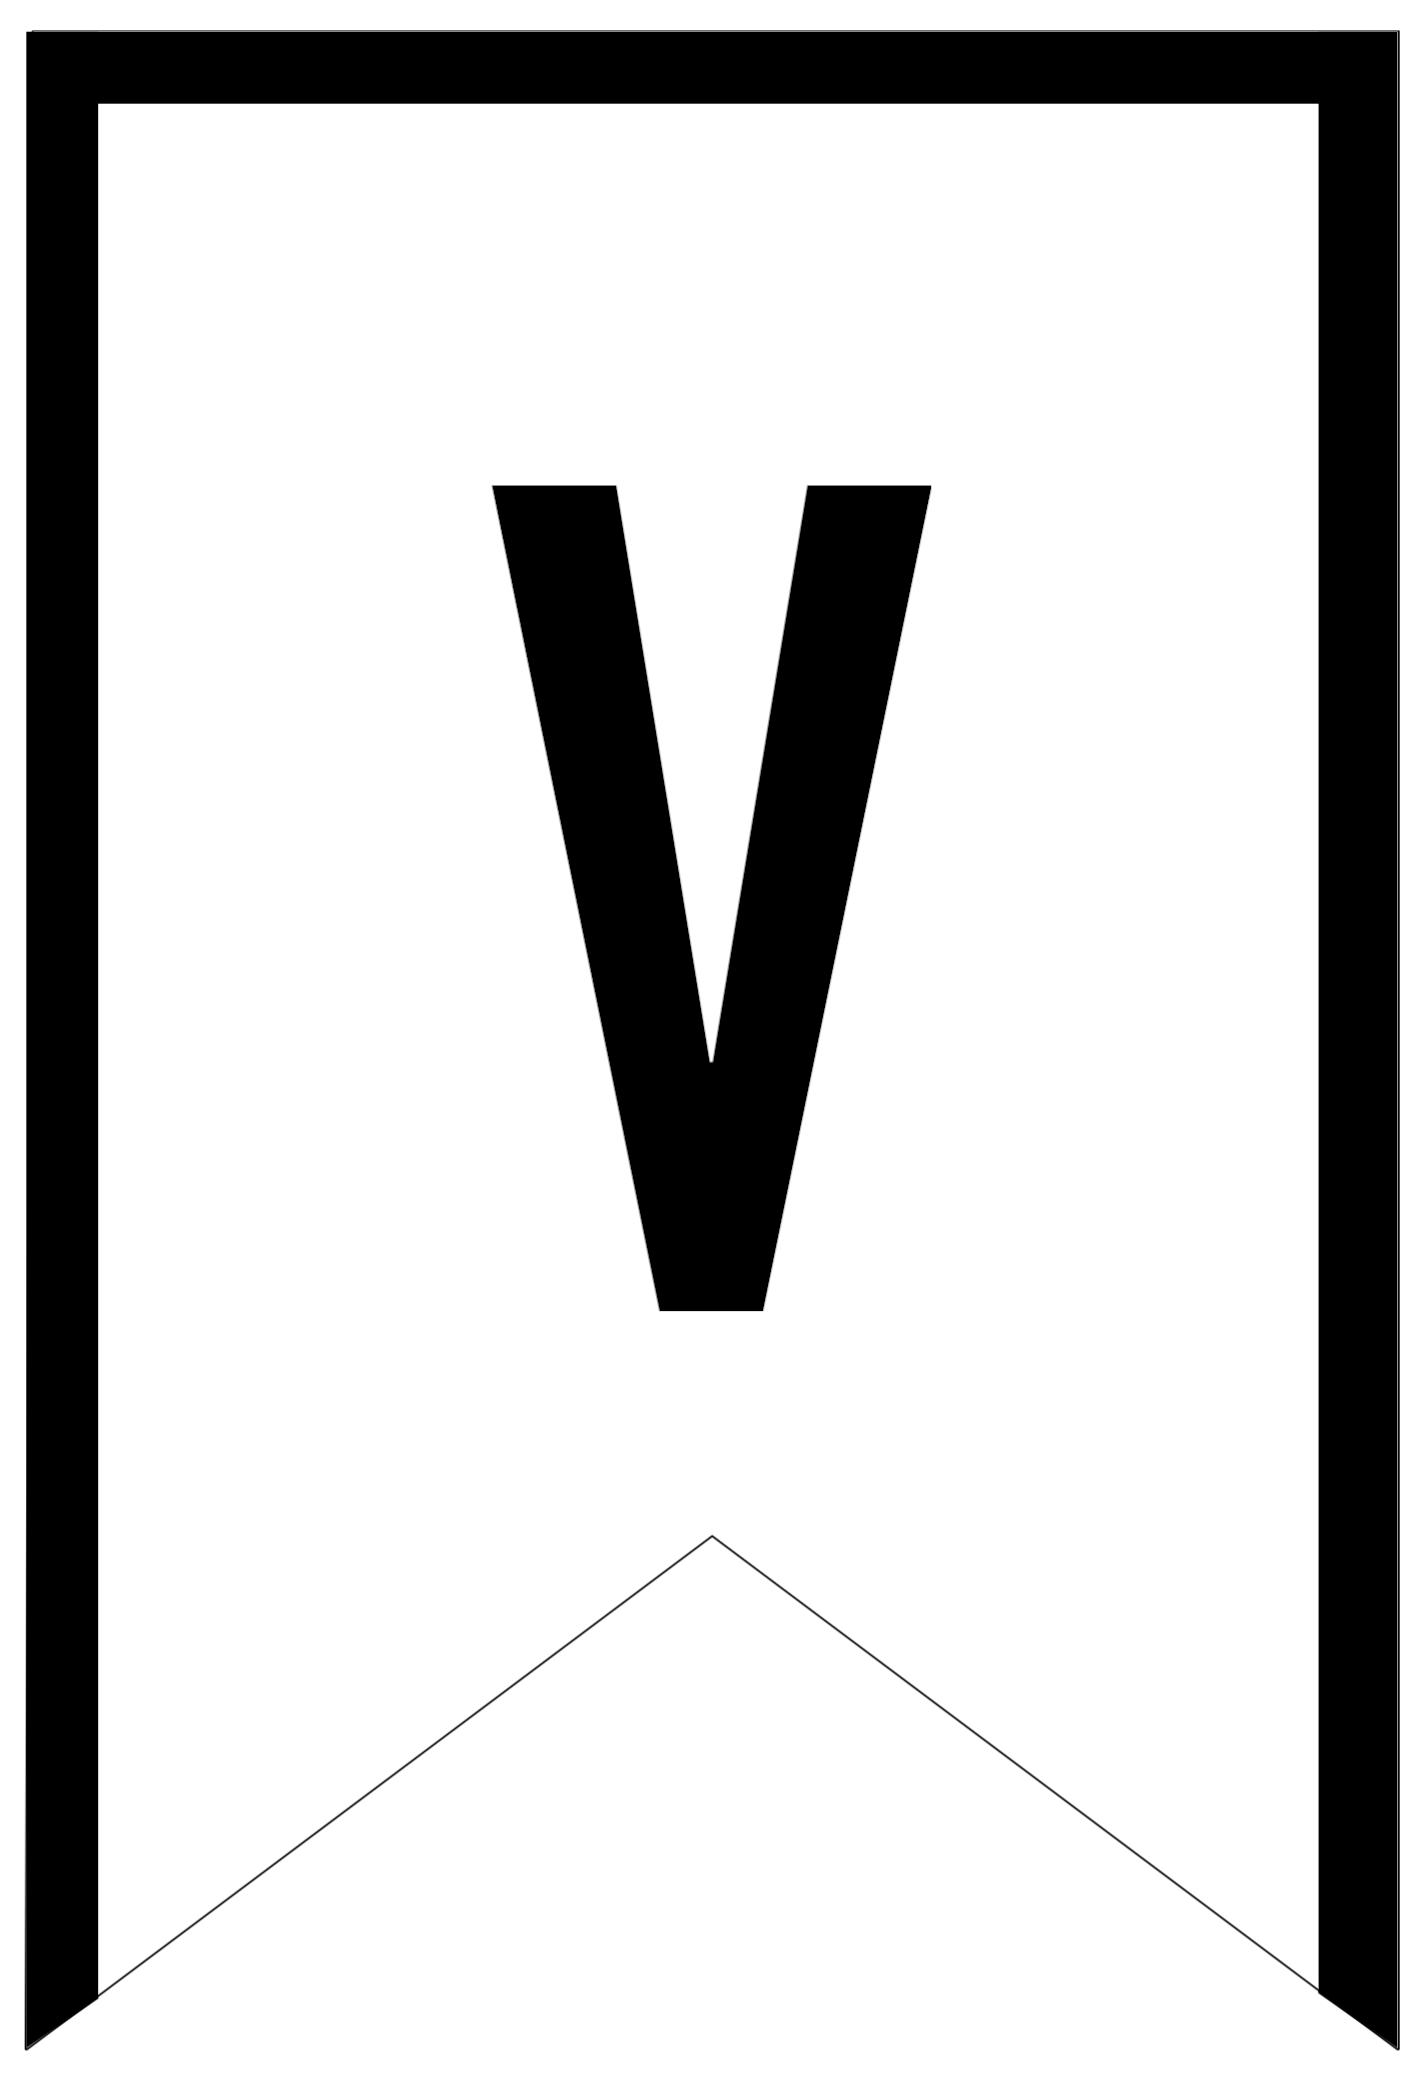 V Alphabet Letters T Printable Templates on printable black and white templates, fancy alphabet templates, printable halloween templates witches hat, printable giant letters, printable cut out letters, s alphabet letter templates, printable art letters templates, printable western letters font, printable letter-writing template, printable coloring pages, printable letter tracing pages bear, printable shapes templates, printable family templates, printable letter j template, printable alphabets and numbers, printable preschool graduation program templates, printable varsity letter font, printable fish cut out templates, printable letter designs, printable numbers templates,